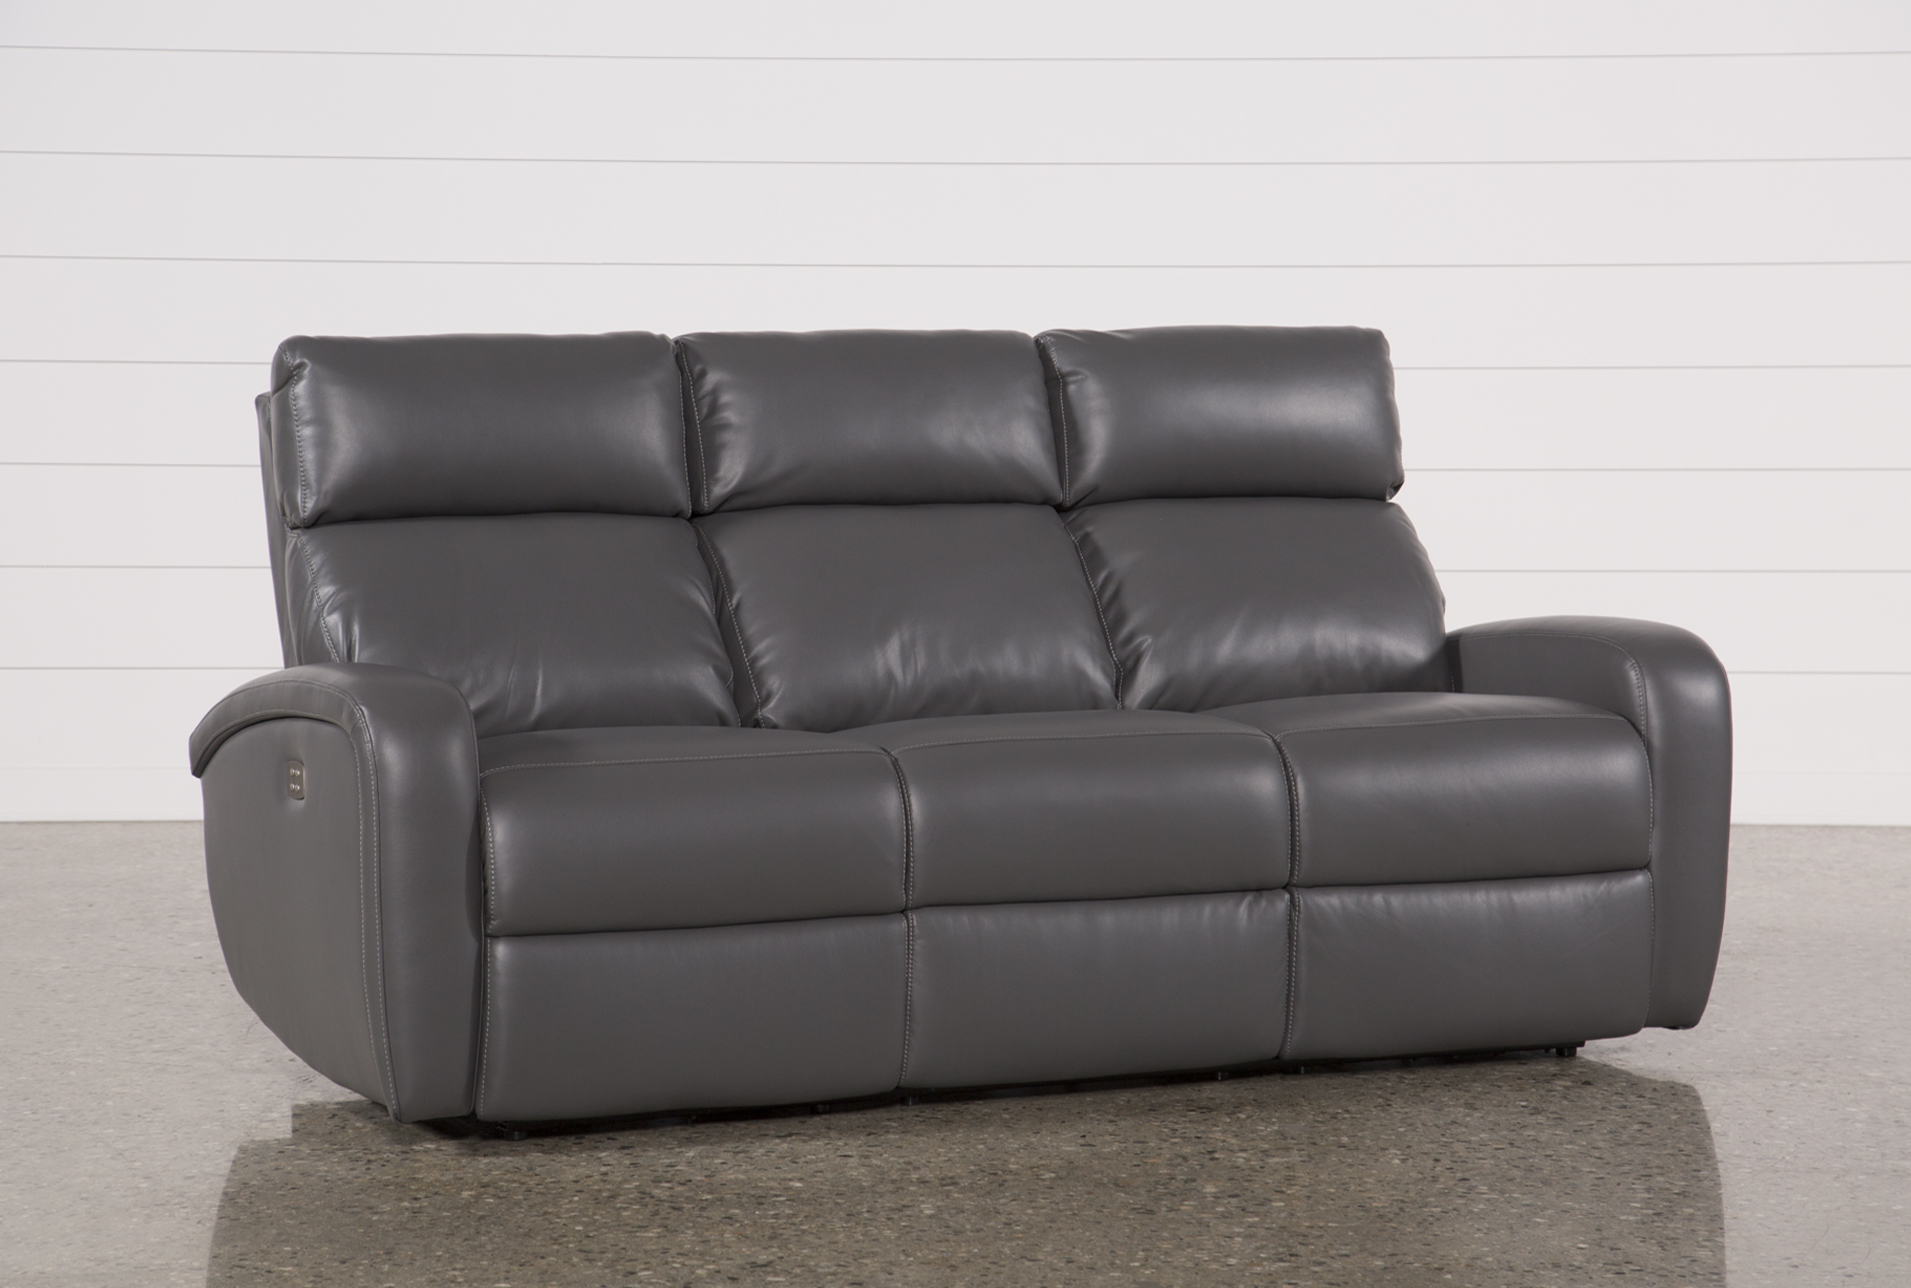 Marvelous Darwin Graphite Power Reclining Sofa (Qty: 1) Has Been Successfully Added  To Your Cart.